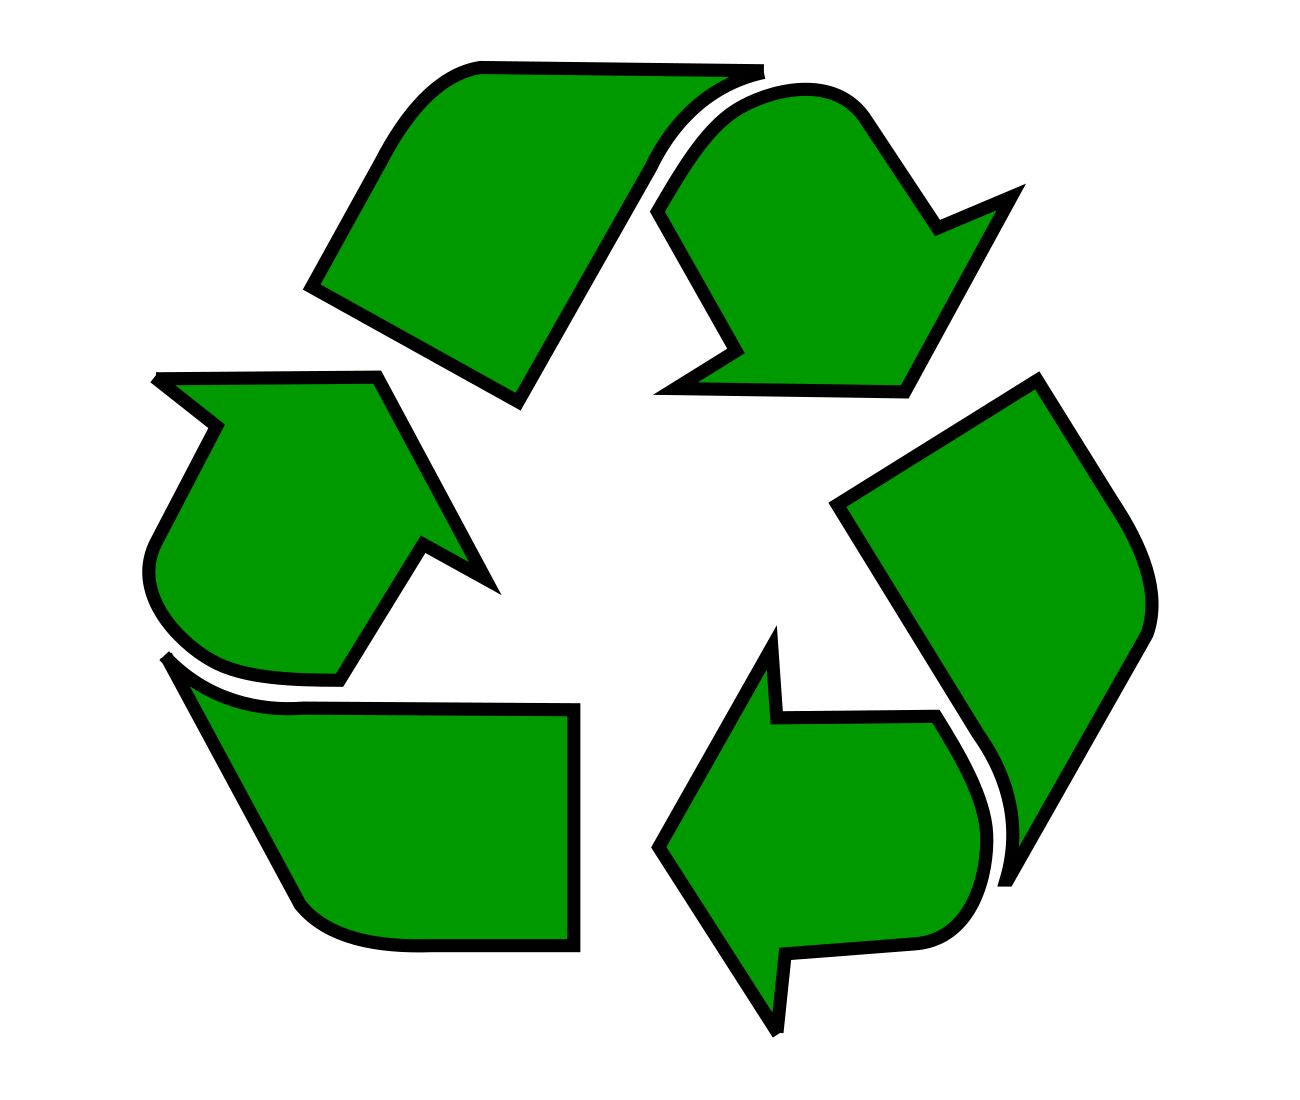 Meaning Recycle logo and symbol.